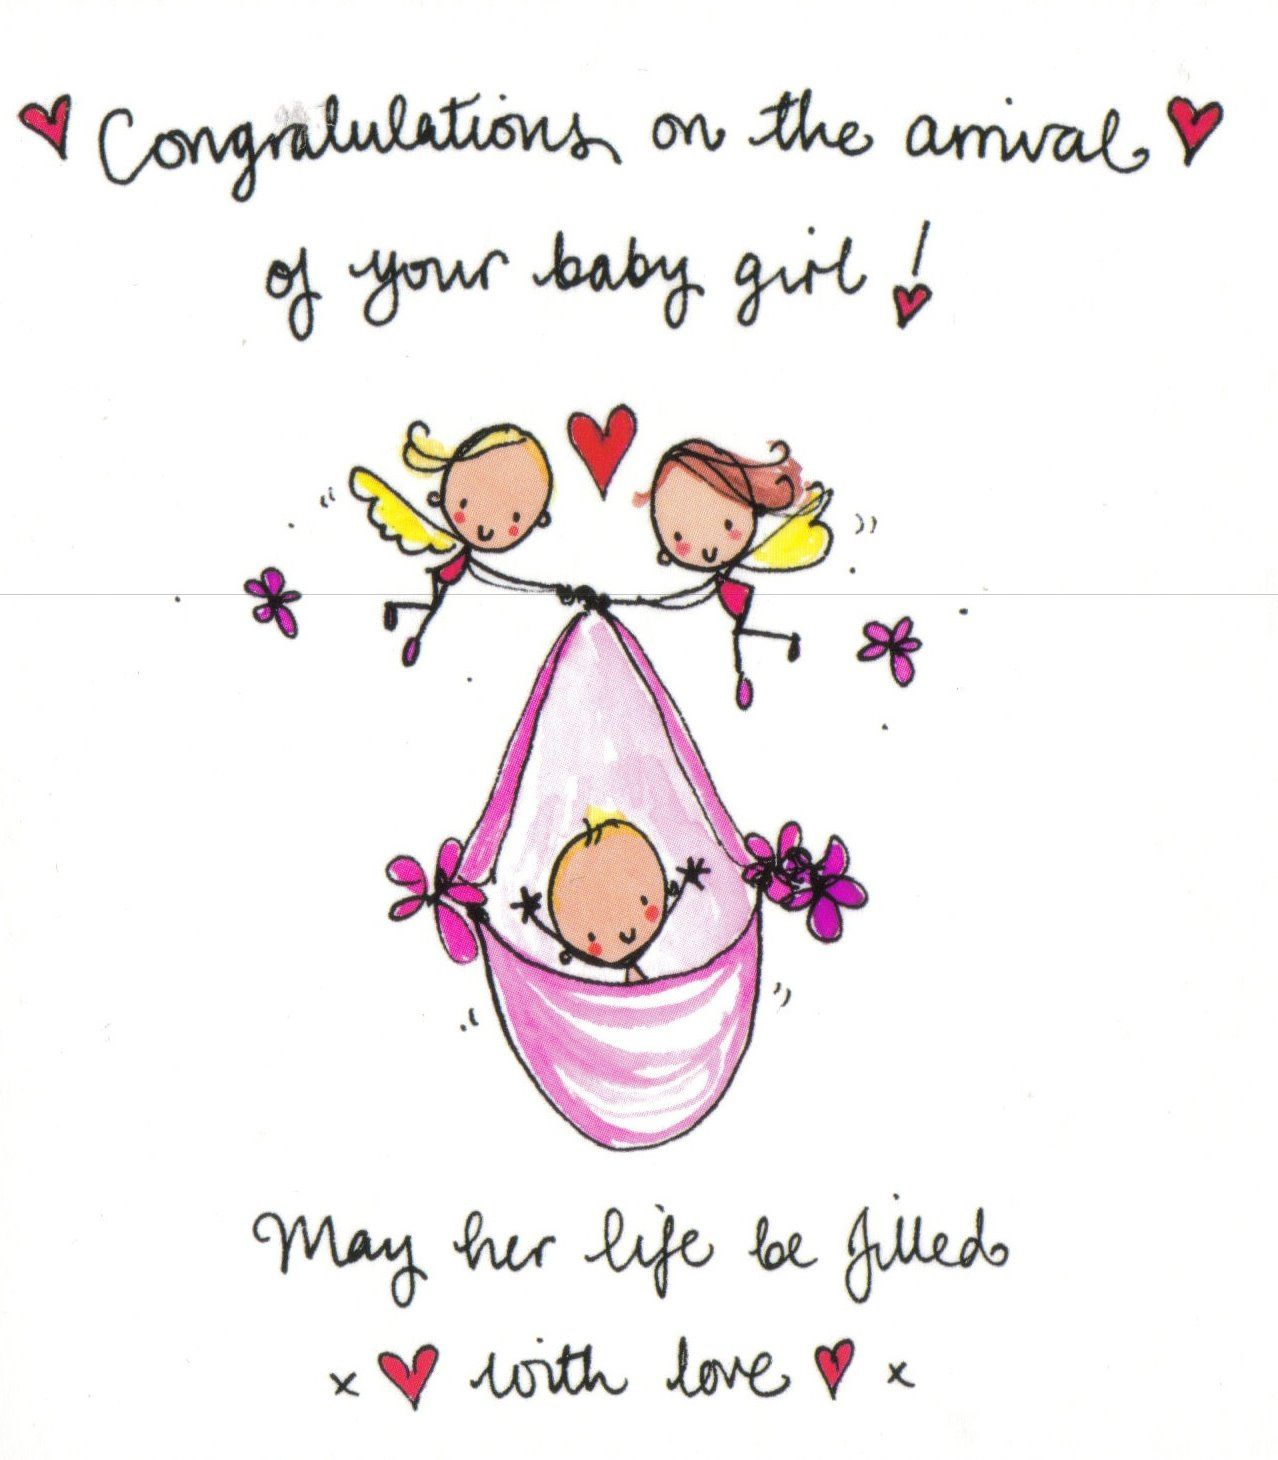 Juicy lucy new arrival girl1 greetings blessings pinterest juicy lucy new arrival girl1 juicy lucybirthday quotesbaby cardsgreeting cardbaby girl congratulations kristyandbryce Images